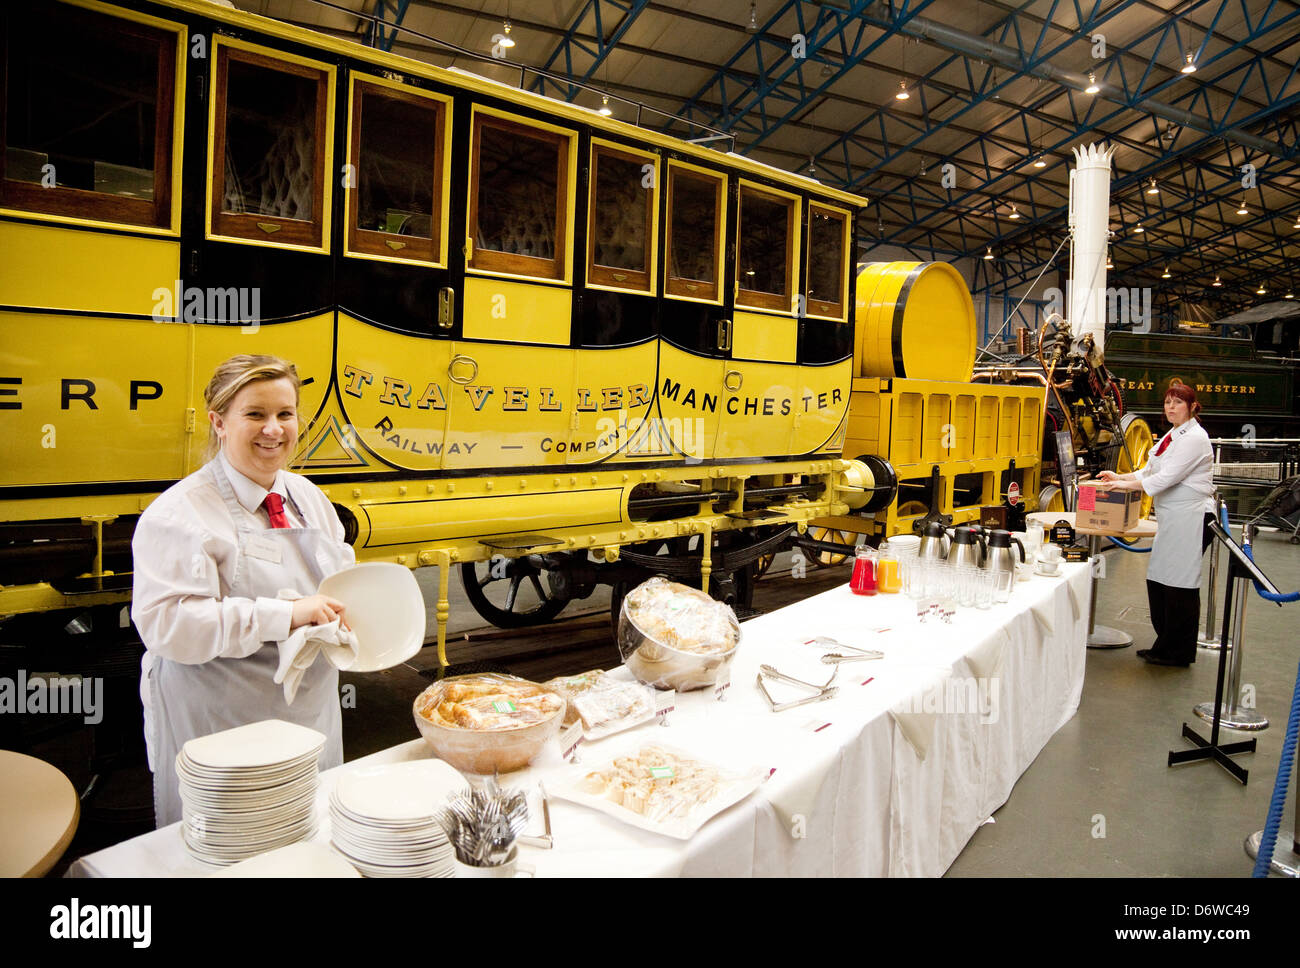 Cheerful catering staff at the National Railway Museum, York, Yorkshire UK - Stock Image